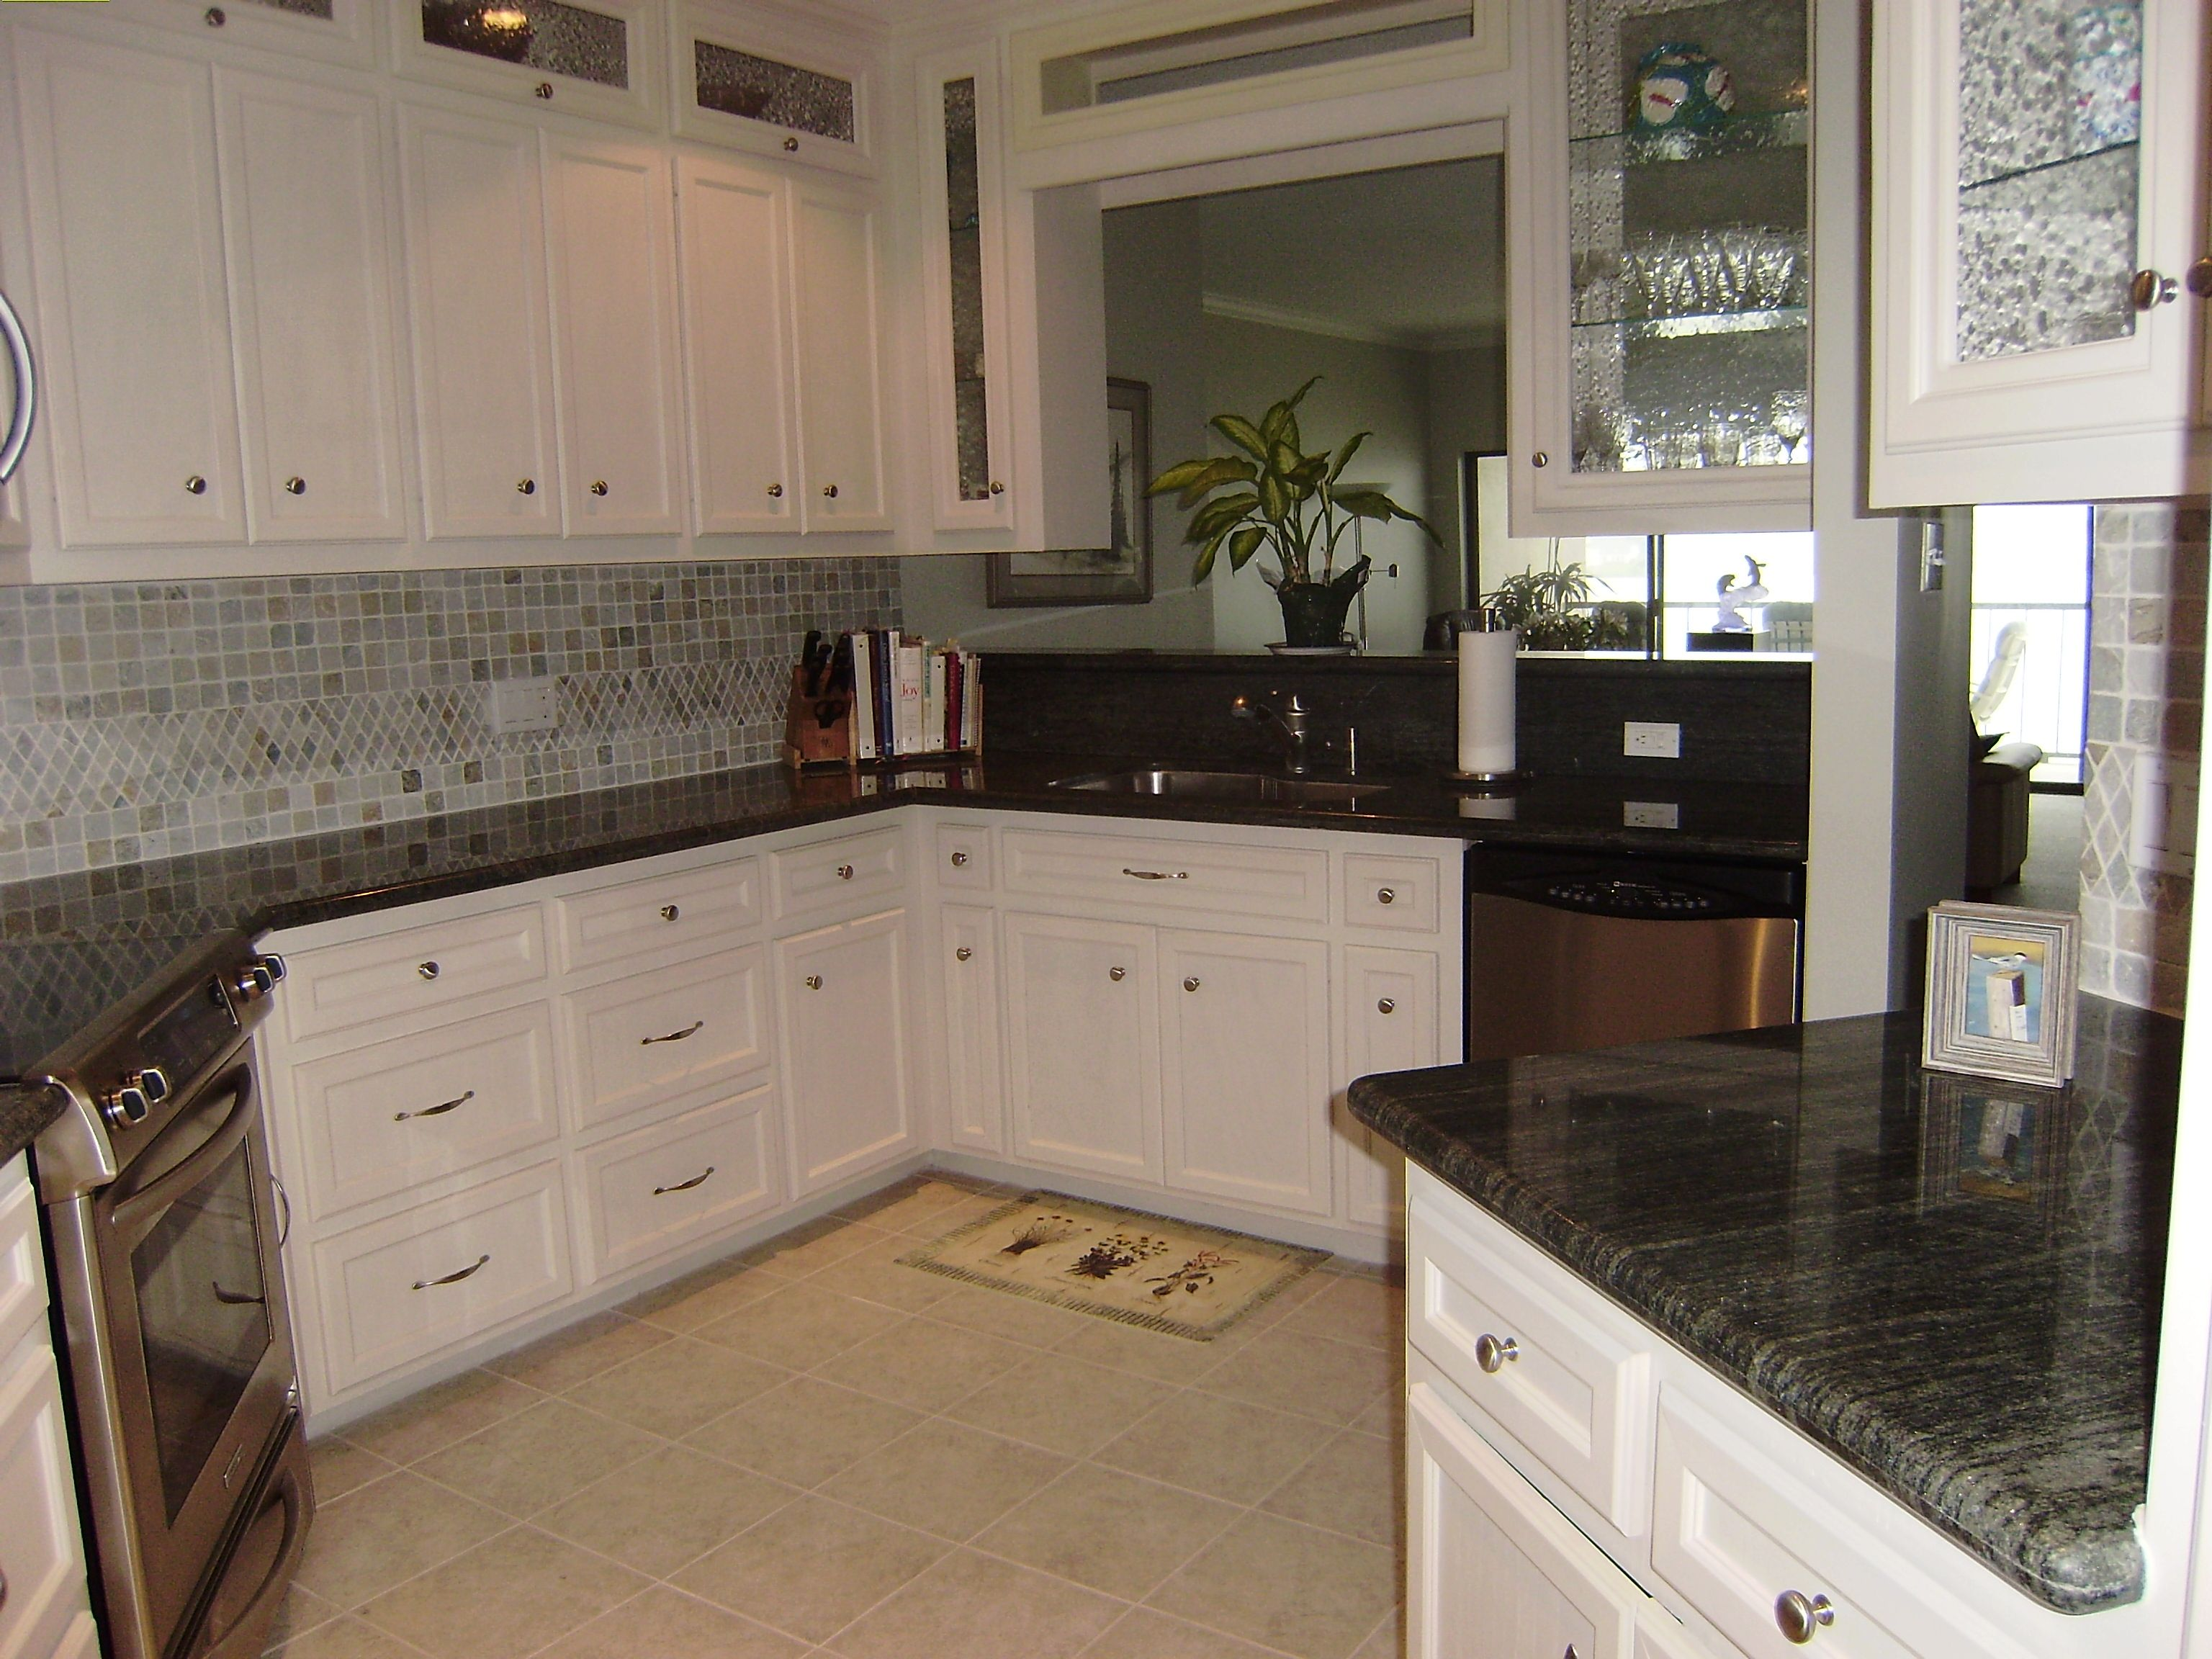 Window treatment ideas for above kitchen sink  here is a more contemporary kitchen remodel  kitchen remodels